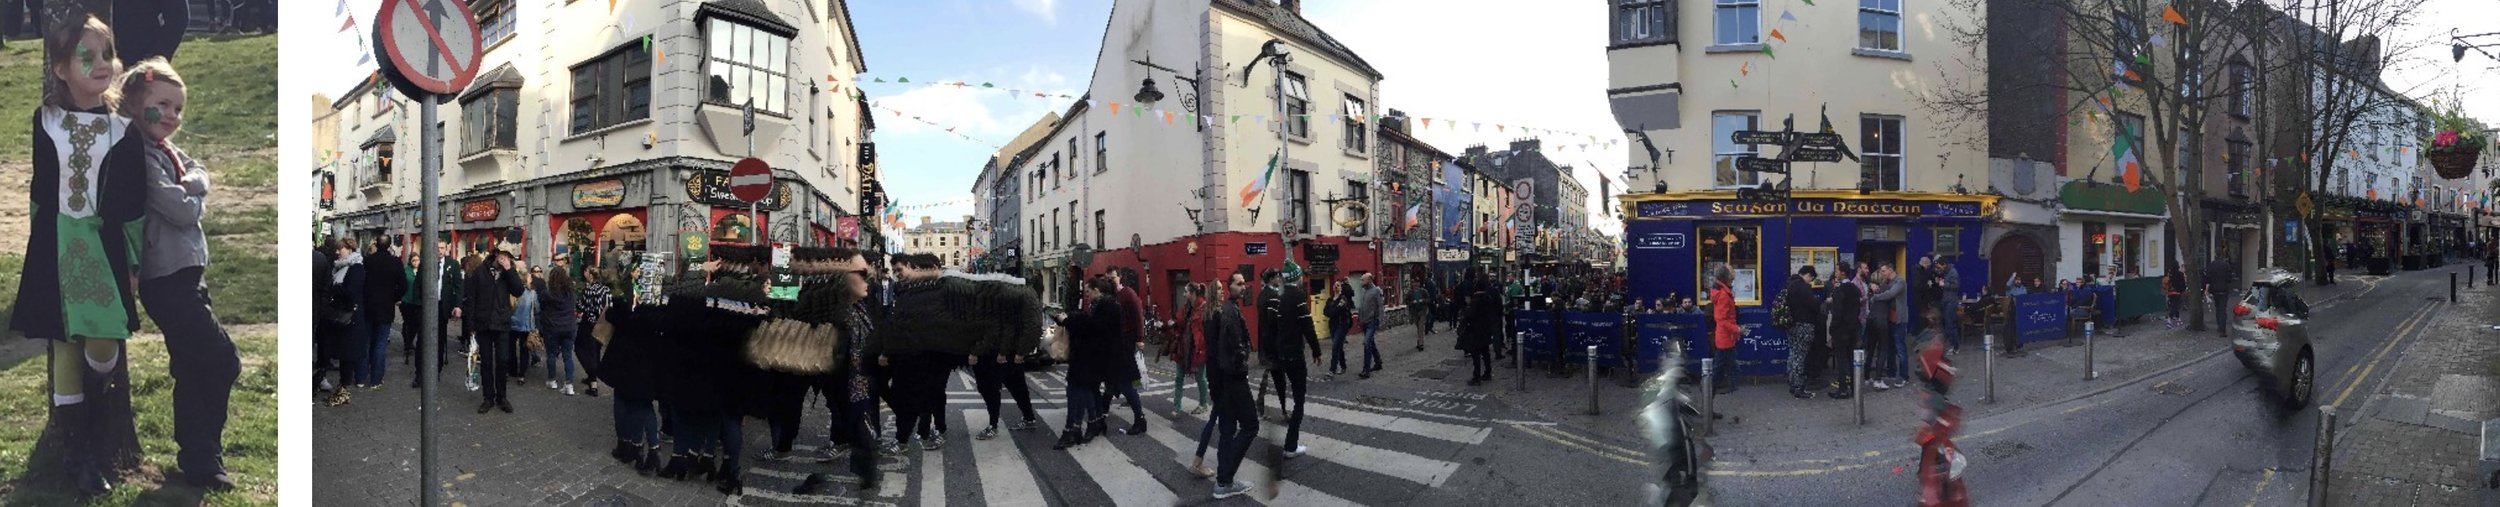 Saint Patrick's Day in Galway